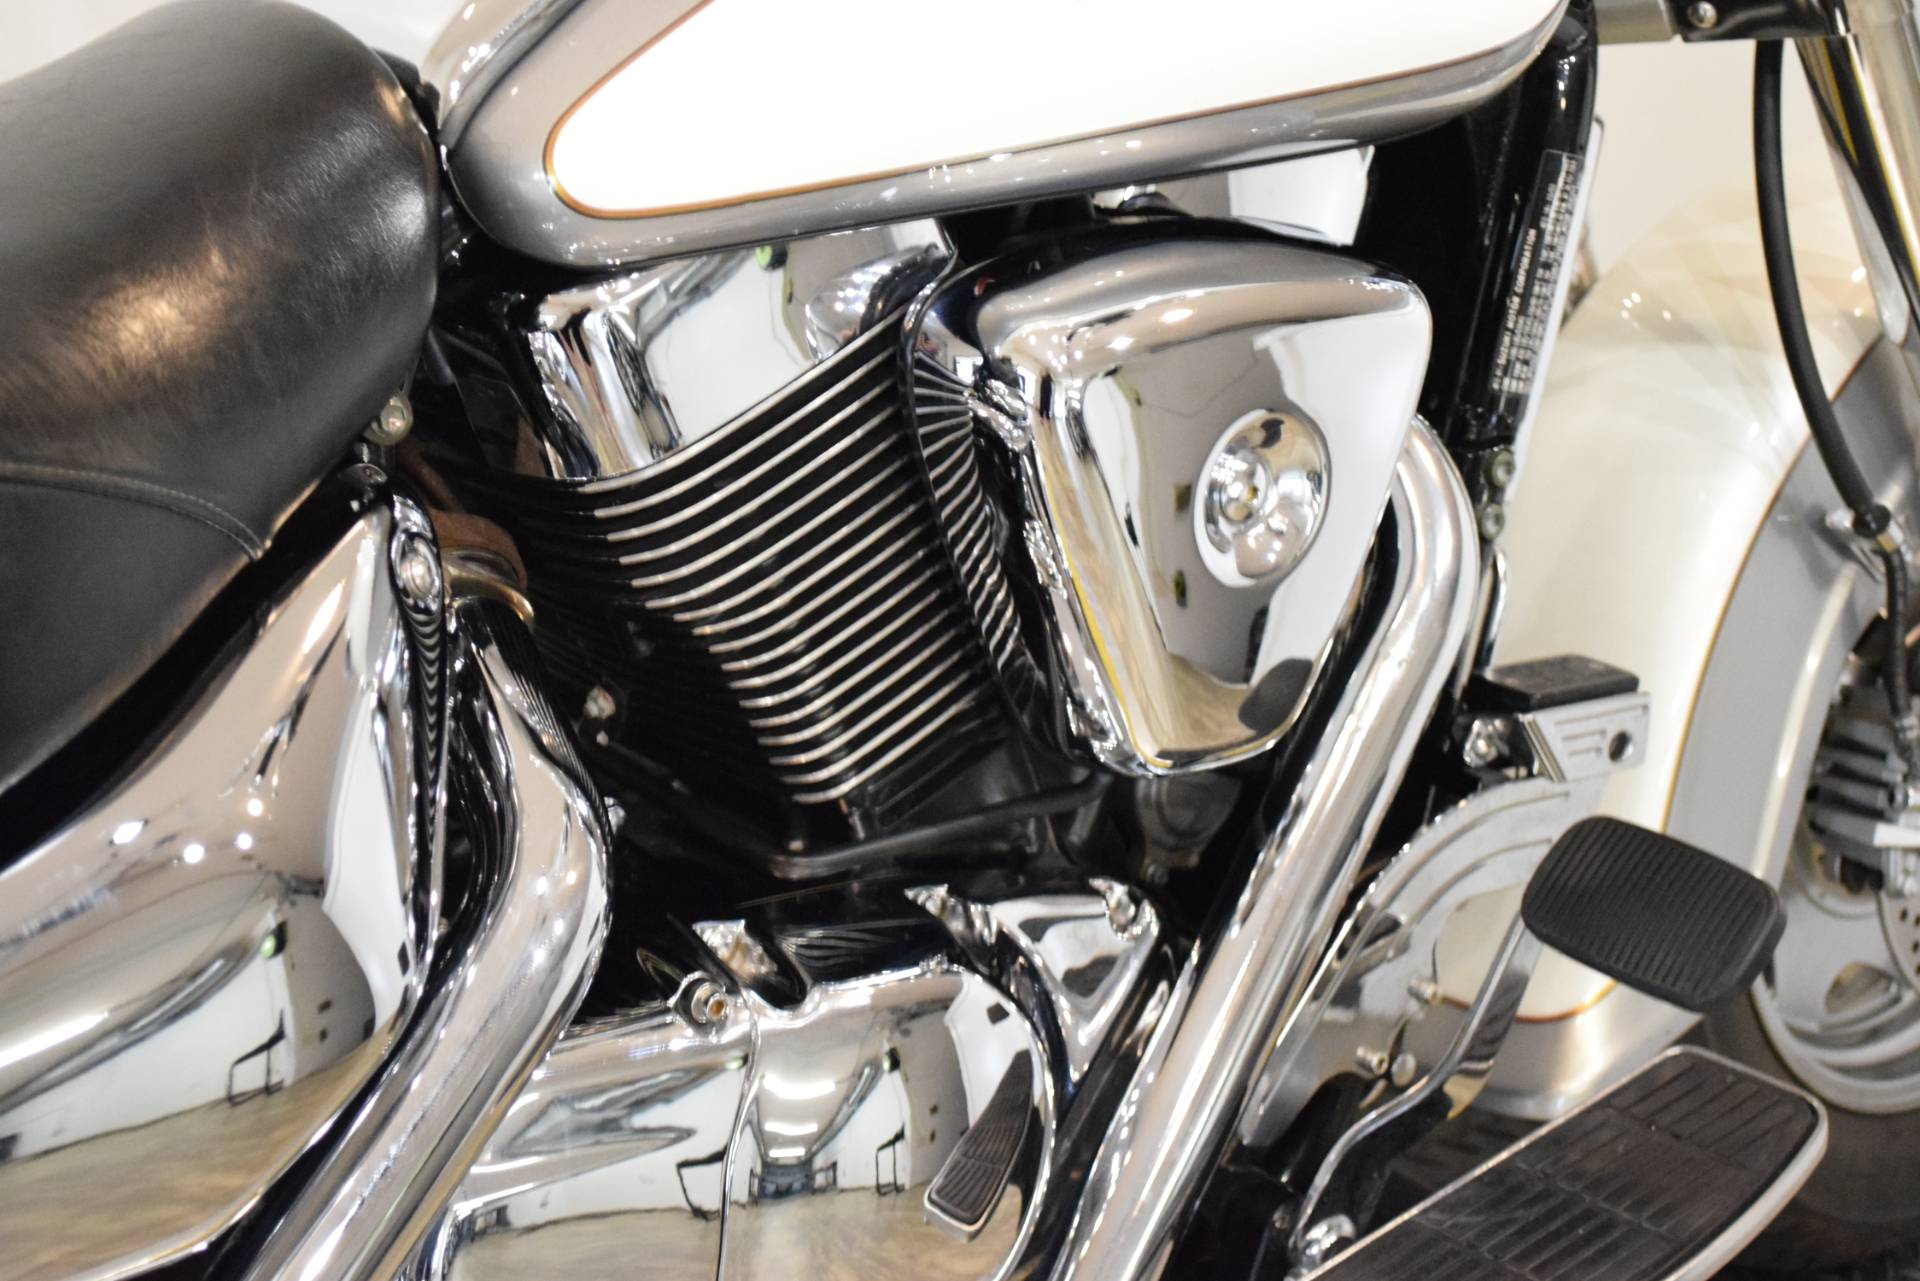 2004 Suzuki Intruder 1500LC in Wauconda, Illinois - Photo 7